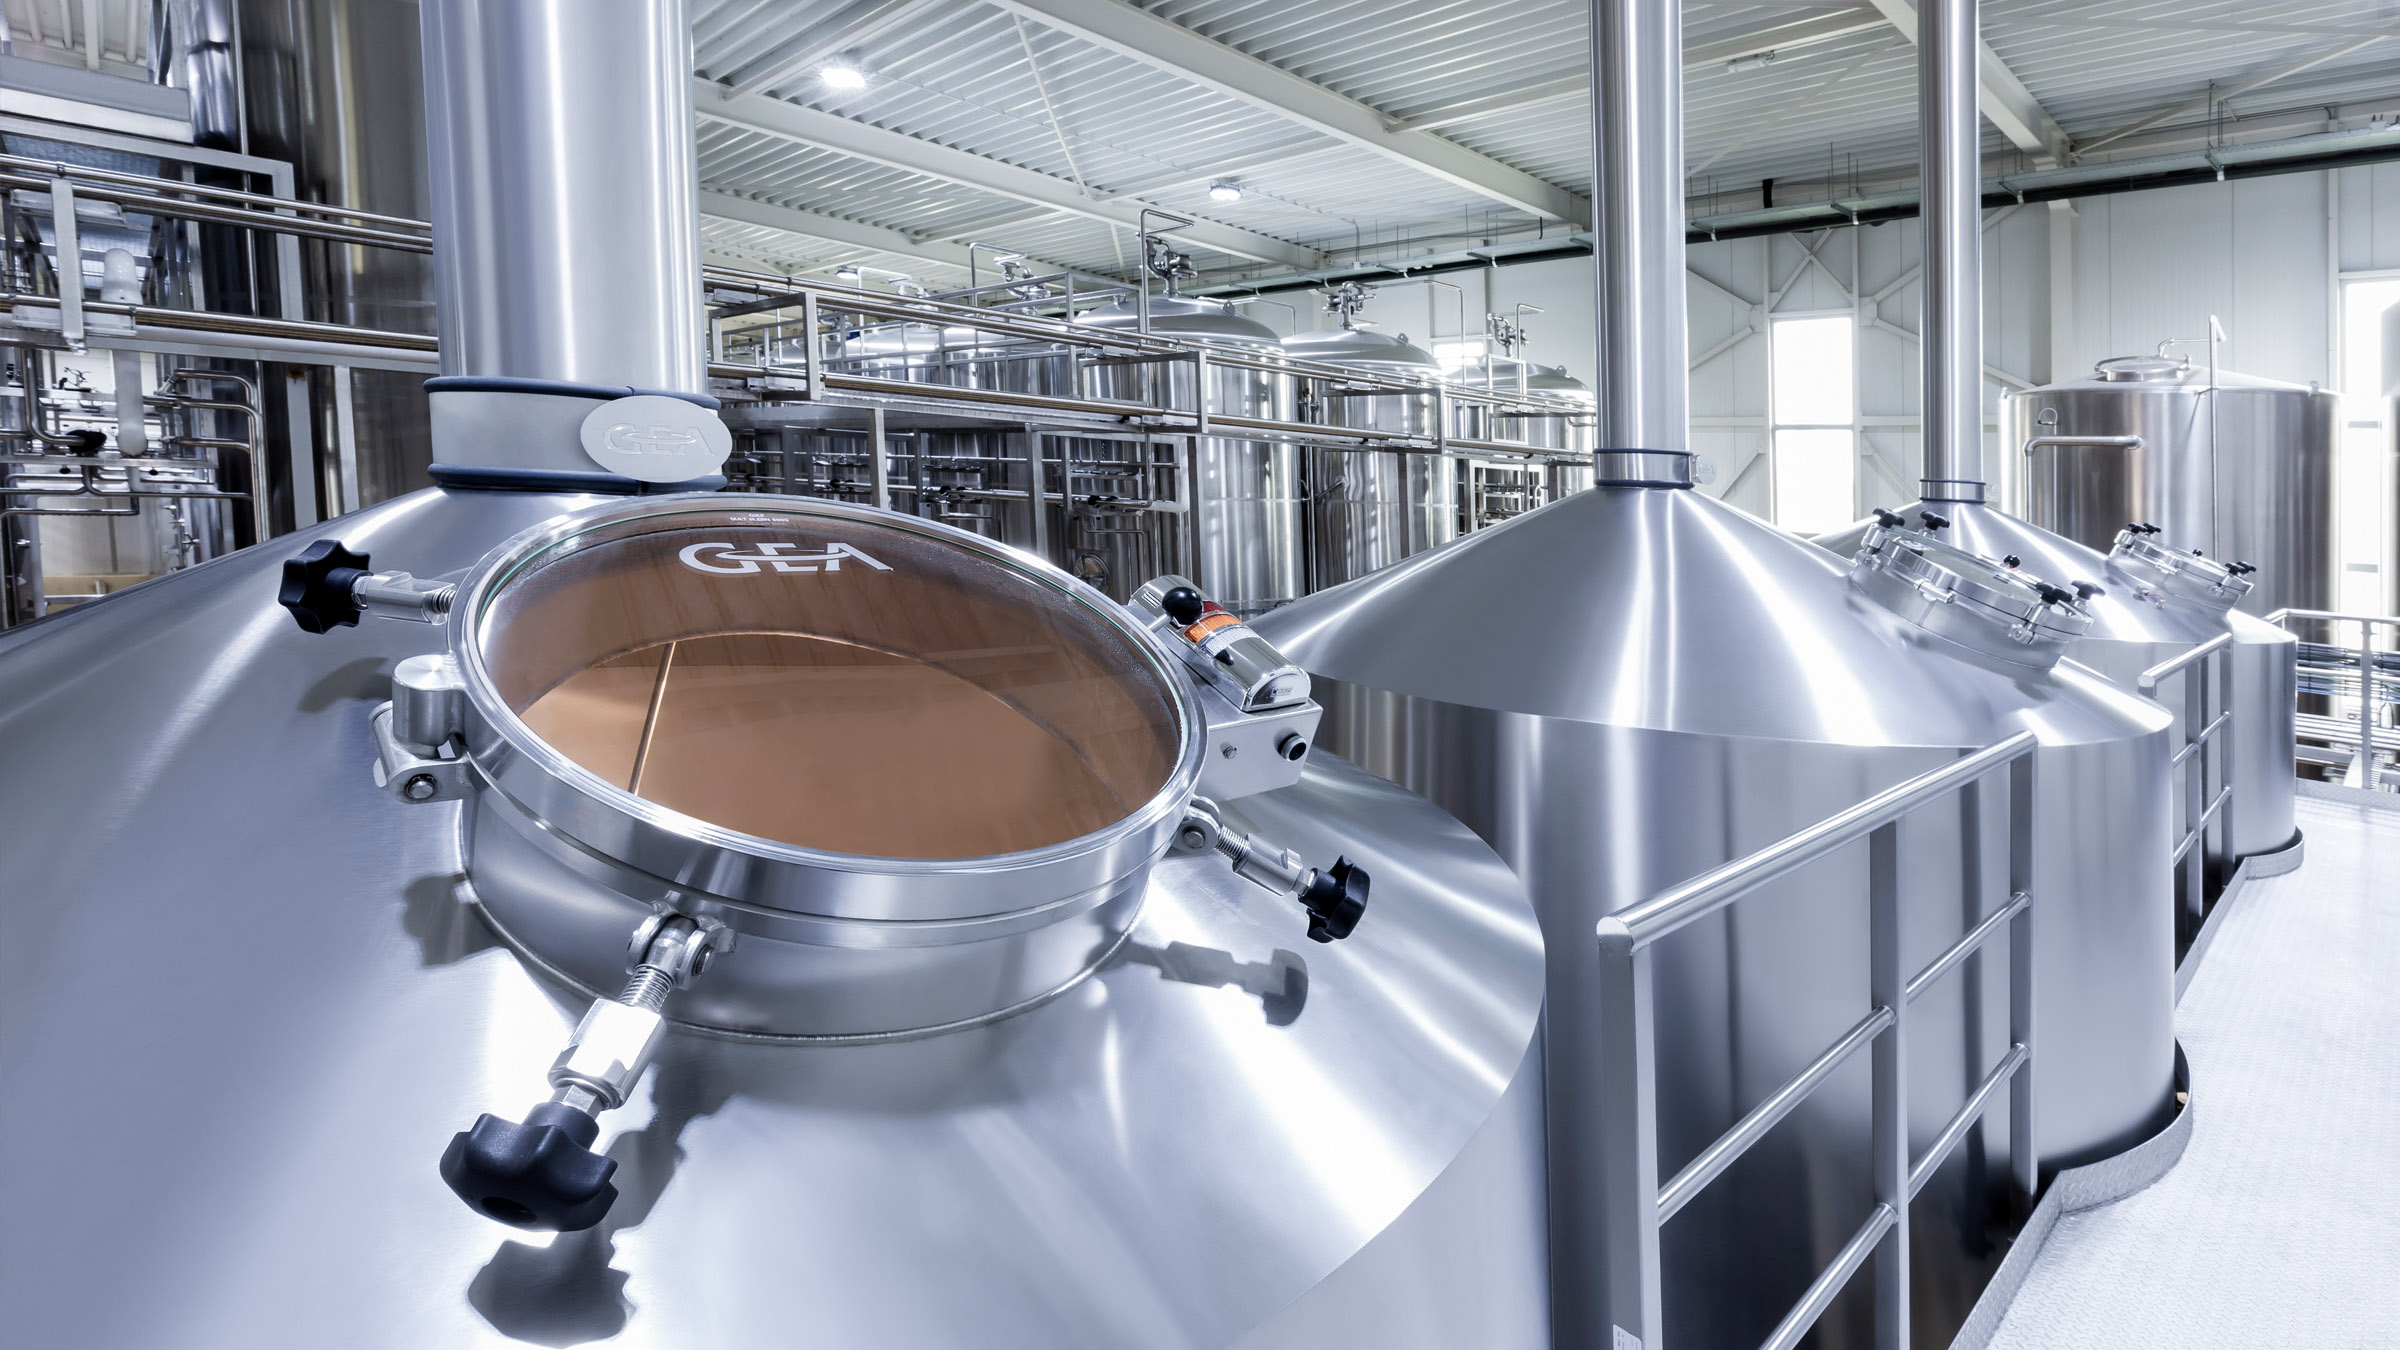 CRAFT-STAR - mash tun kettle, lauter tun, kettle whirlpool